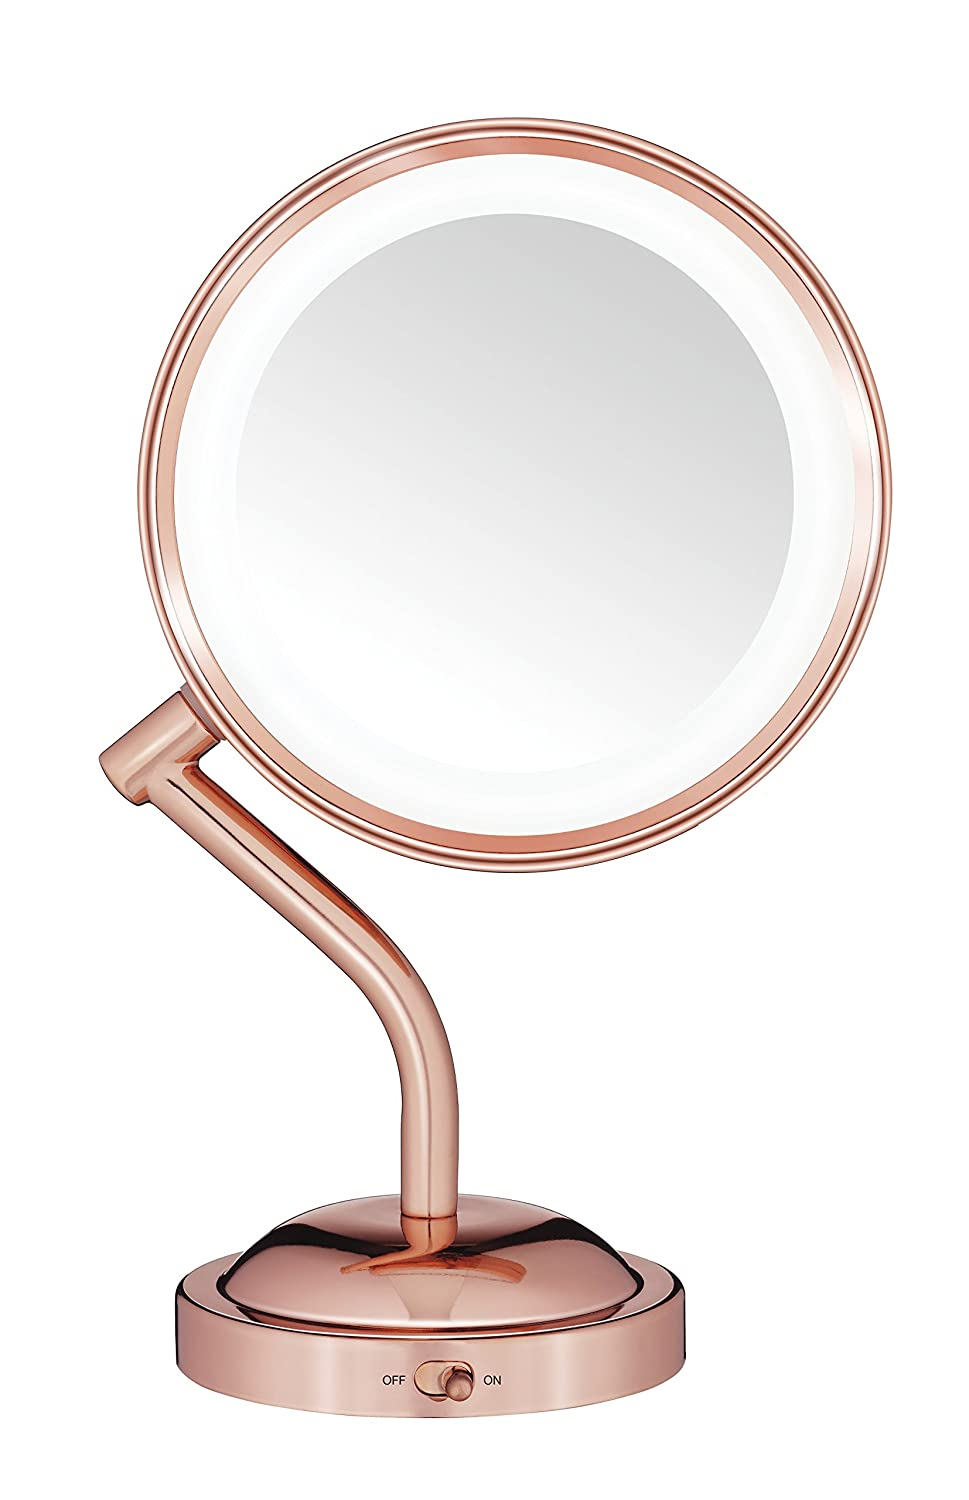 Conair Double-Sided Battery Operated Lighted Makeup Mirror - Lighted Vanity Makeup Mirror with LED Lights; 1x / 5x Magnification; Rose Gold Finish